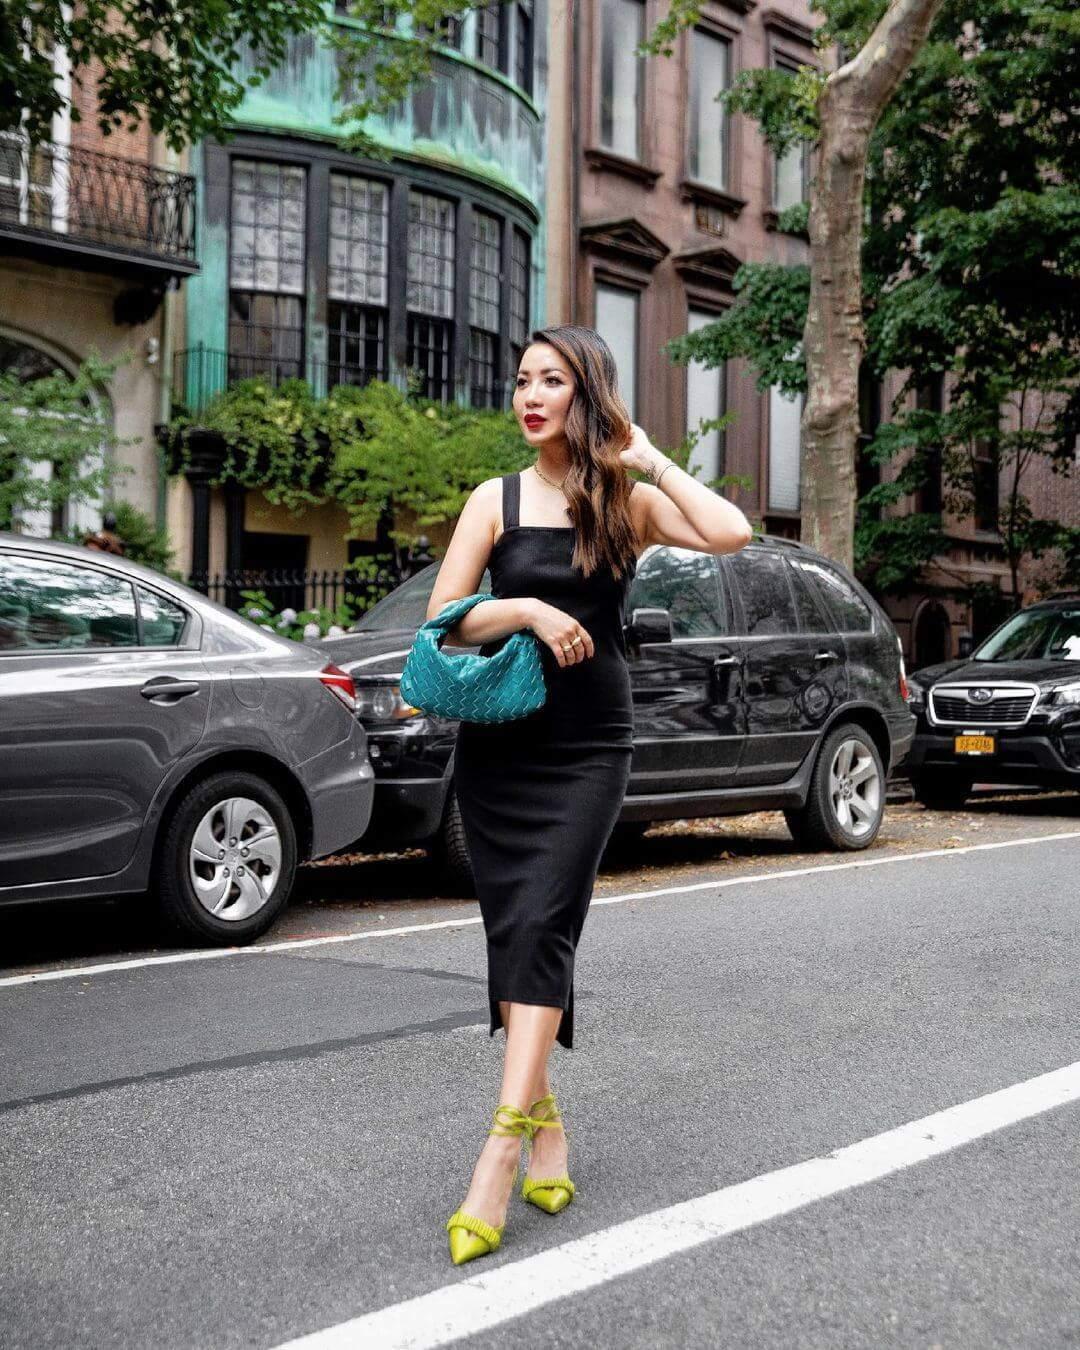 Colorful Summer Accessories You'll Want To Be Seen In